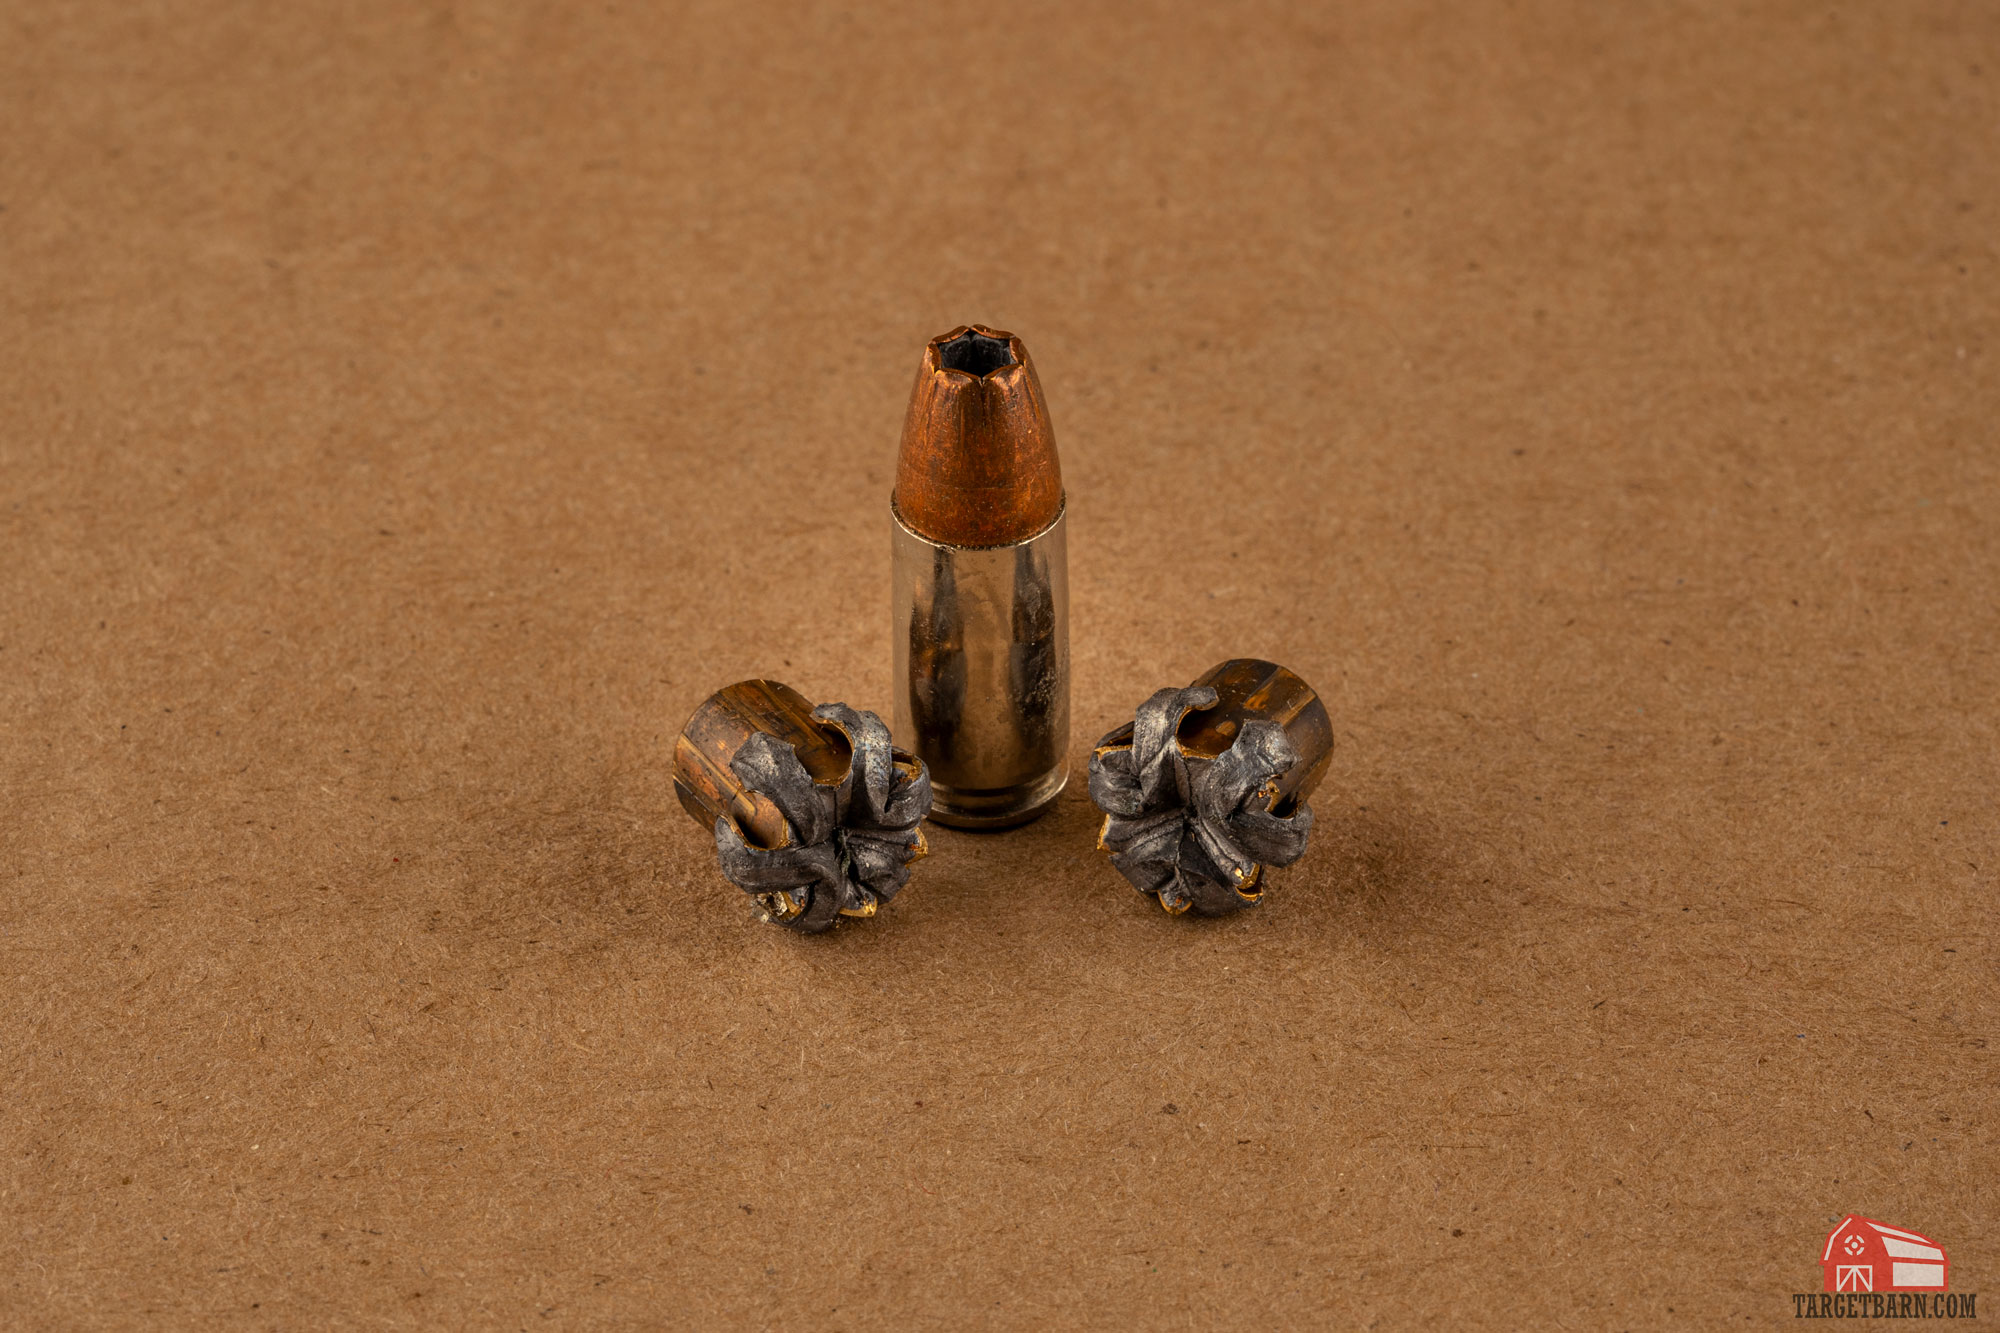 expanded 9mm hollow point bullets